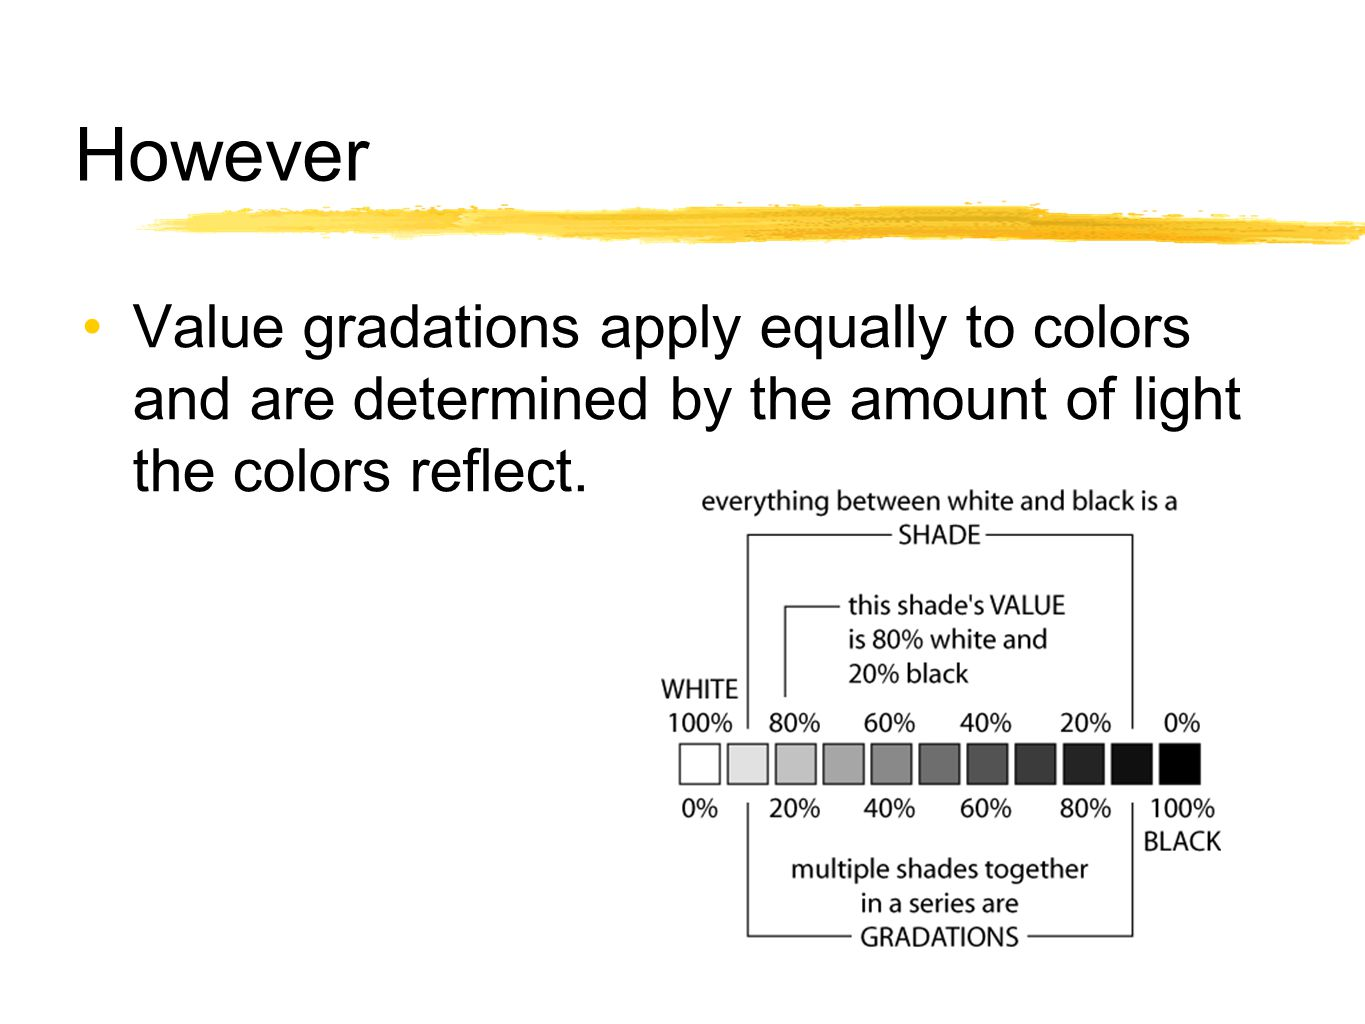 However Value gradations apply equally to colors and are determined by the amount of light the colors reflect.